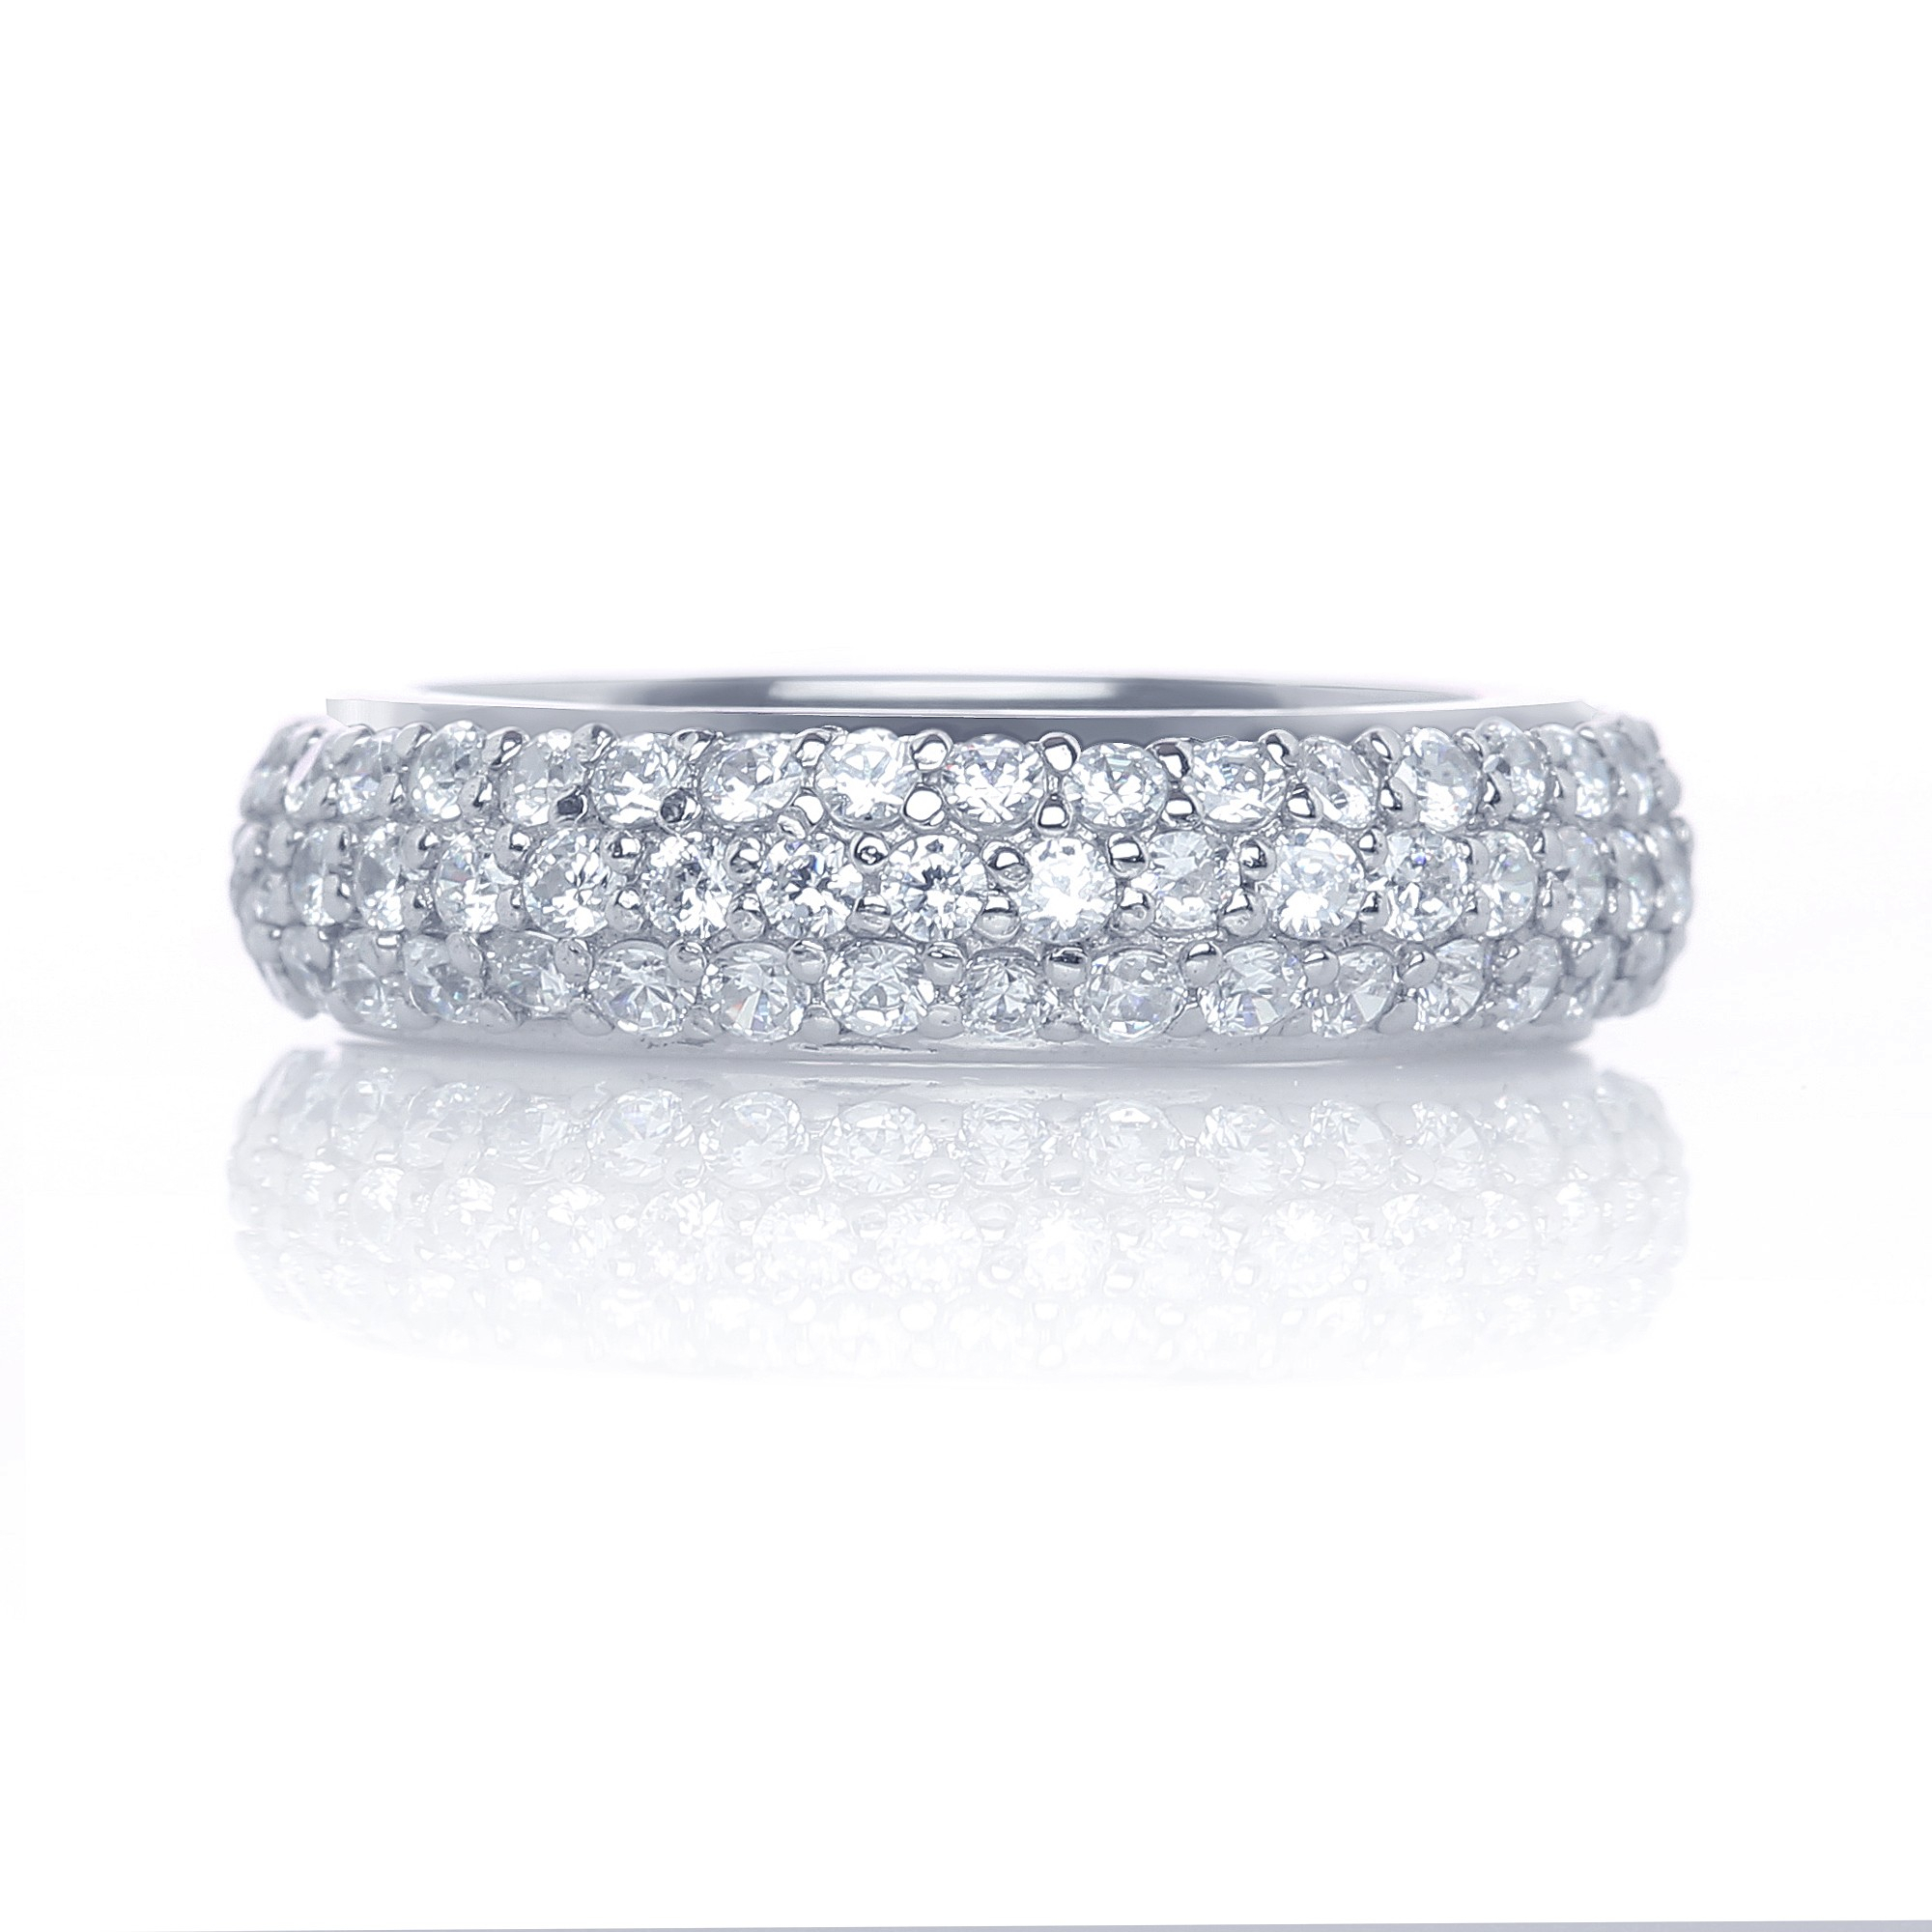 Rhodium Plated 925 Sterling Silver 3 Row Pave Cubic Zirconia With Regard To Current Triple Row Micropavé Diamond Wedding Bands (View 15 of 25)